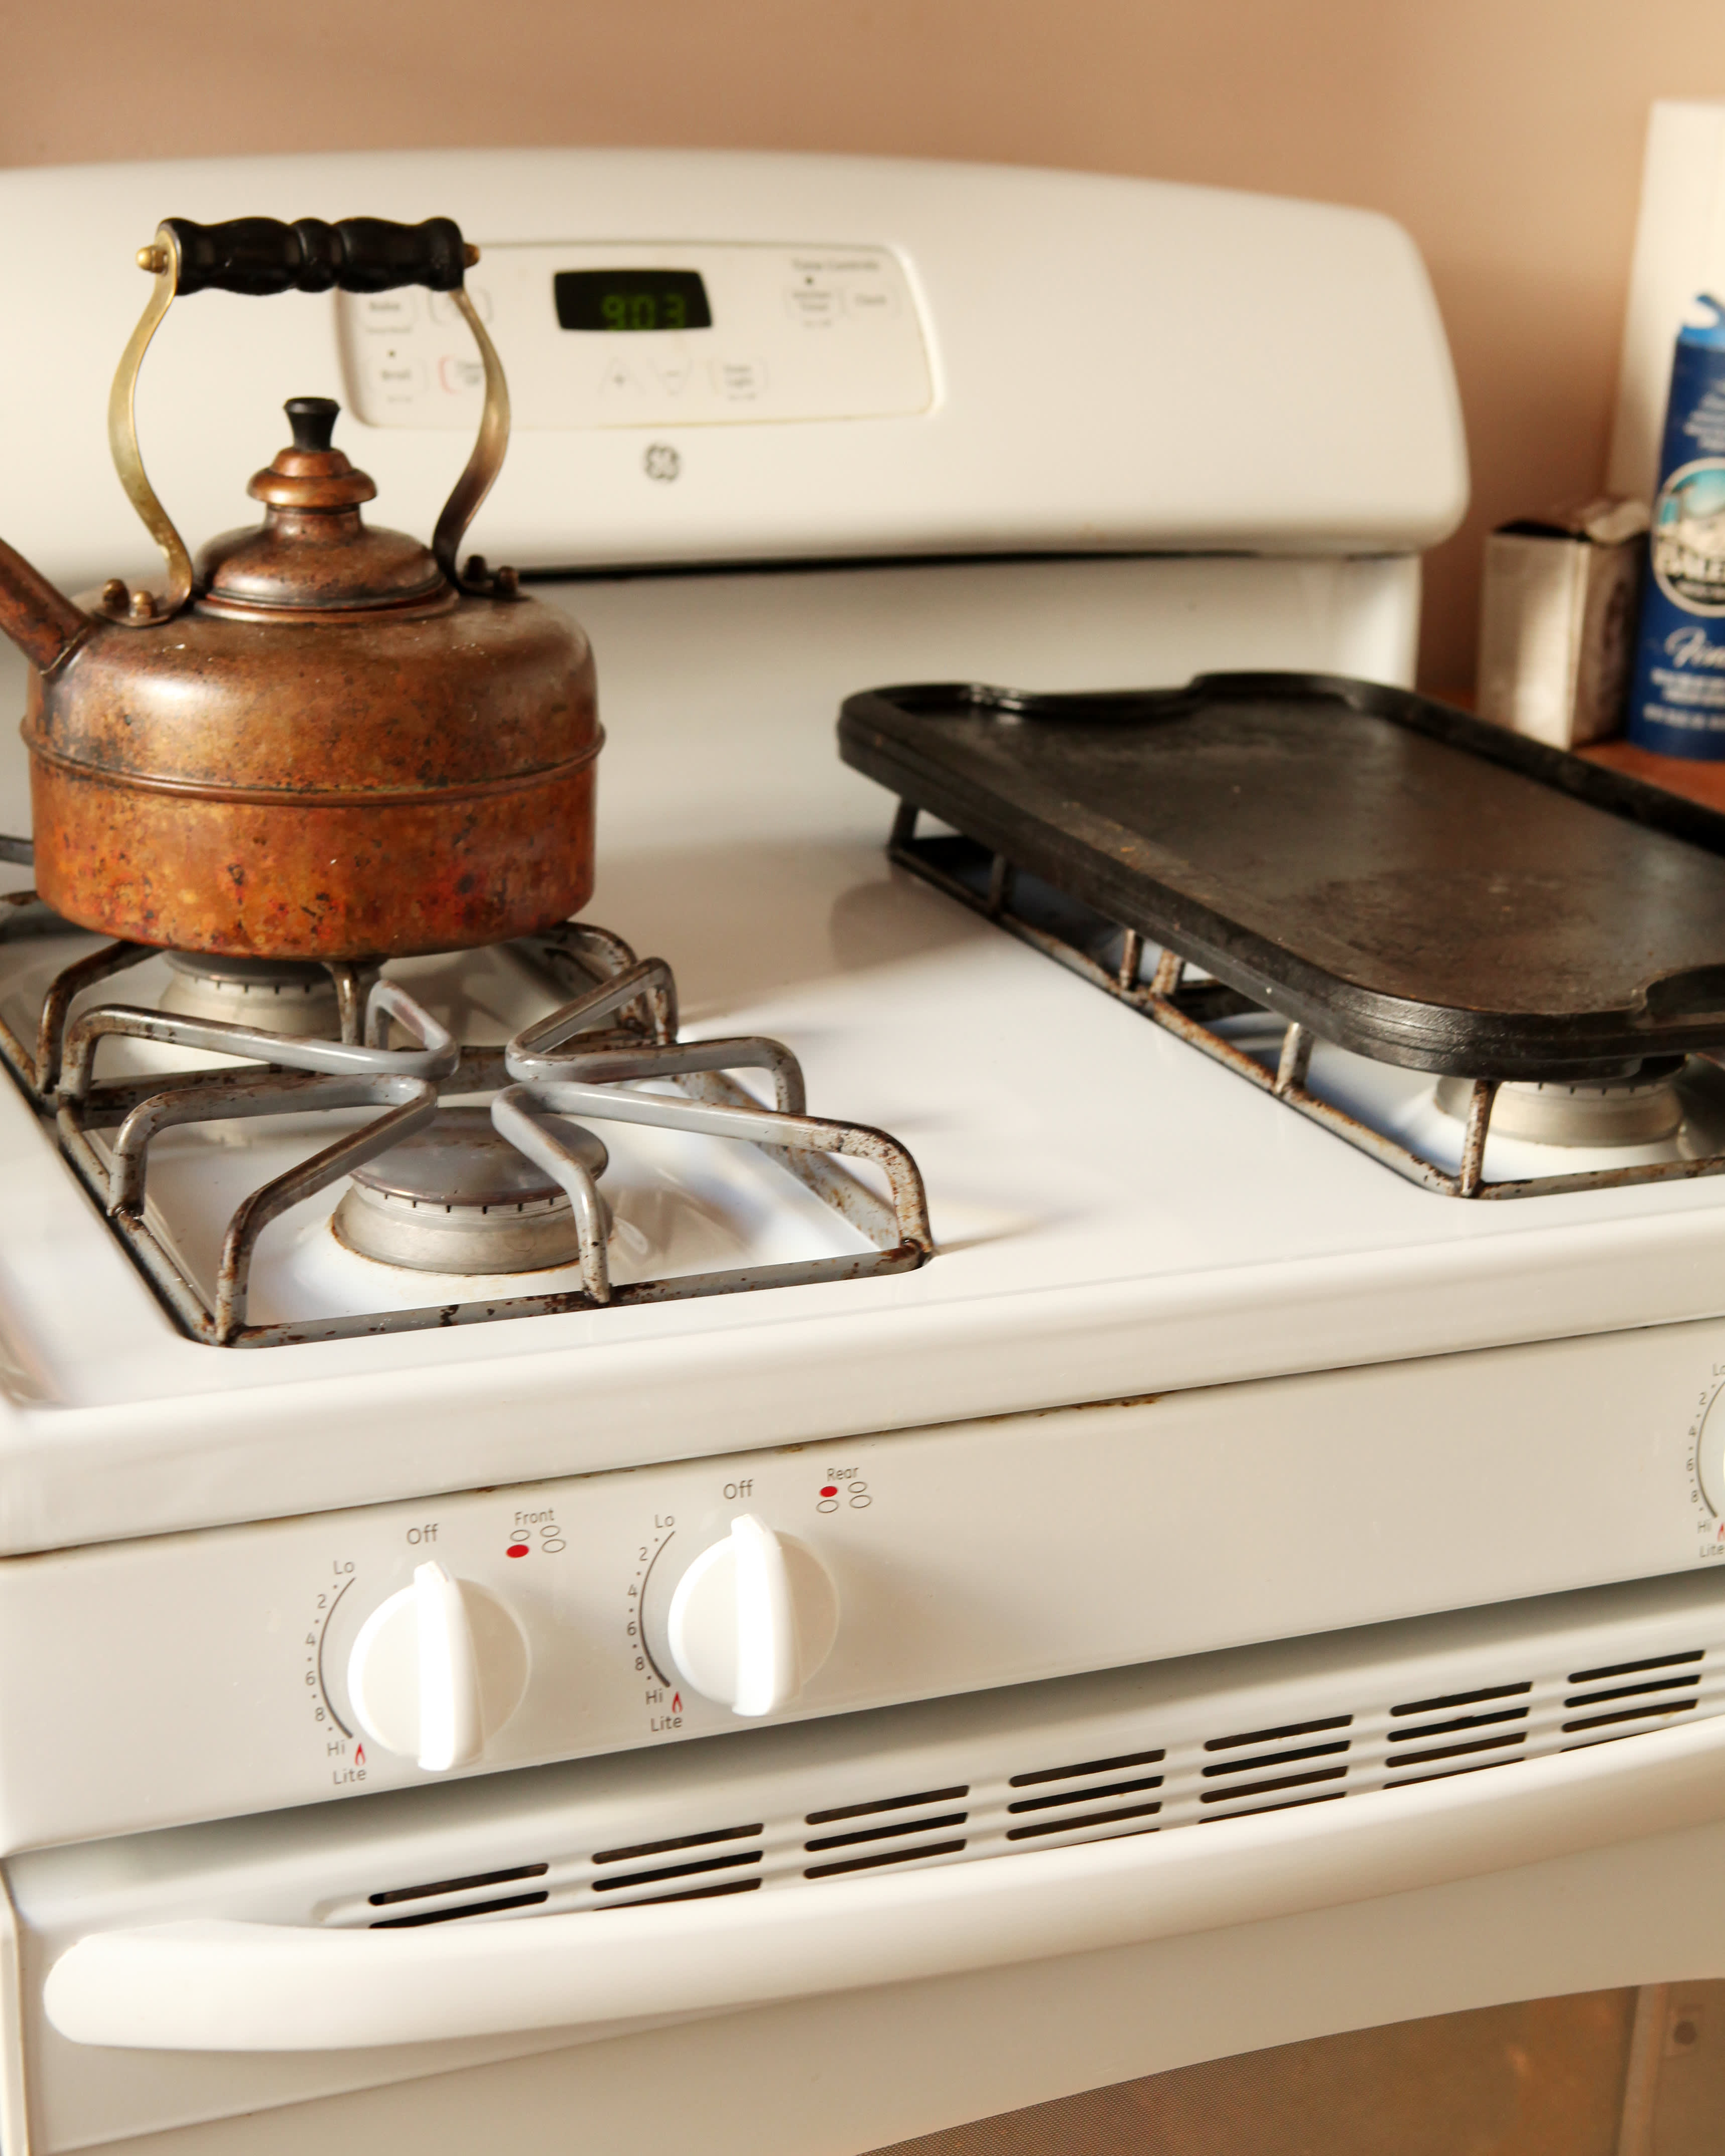 How To Clean an Oven with Baking Soda & Vinegar: gallery image 4